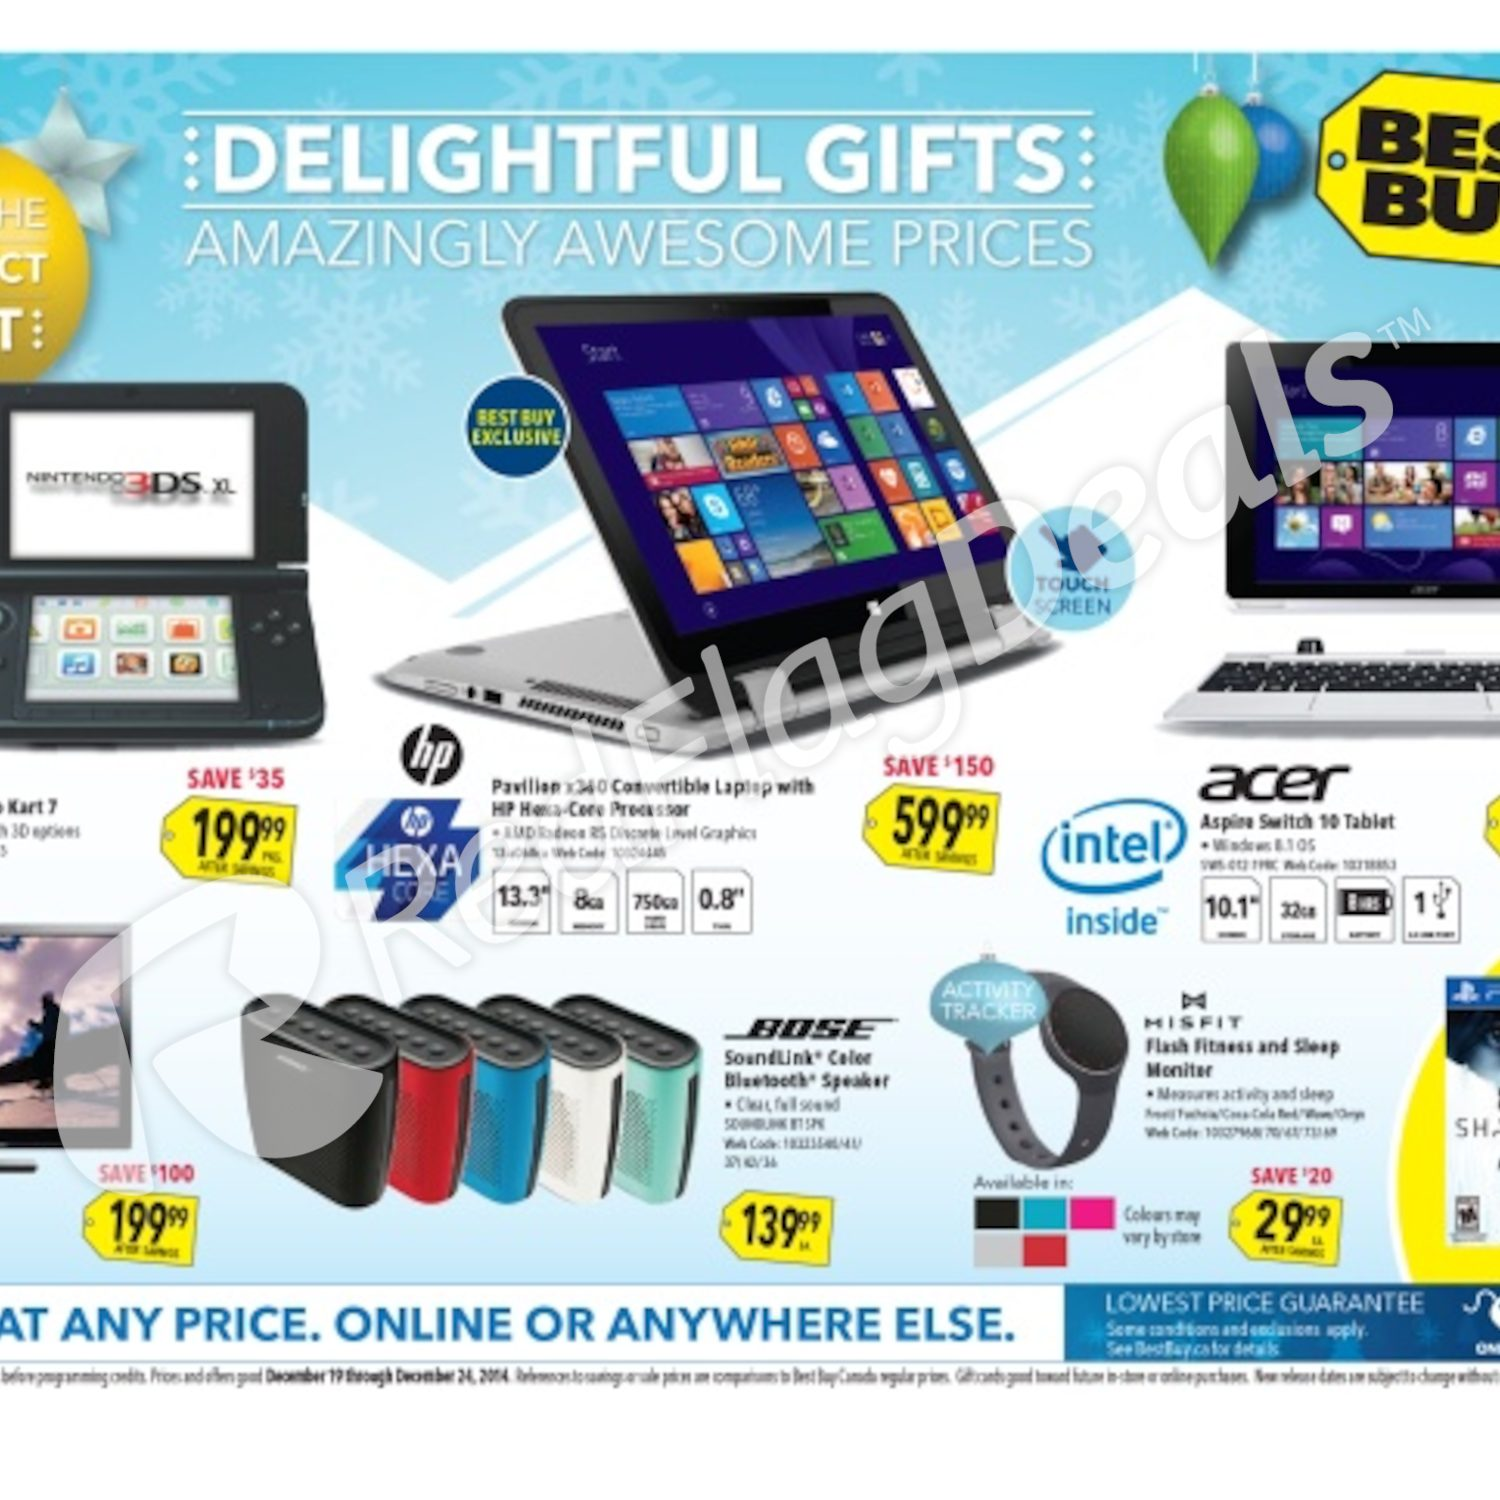 Vizio manual m422i b1 ebook array best buy weekly flyer delightful gifts amazingly awesome prices rh redflagdeals com fandeluxe Images